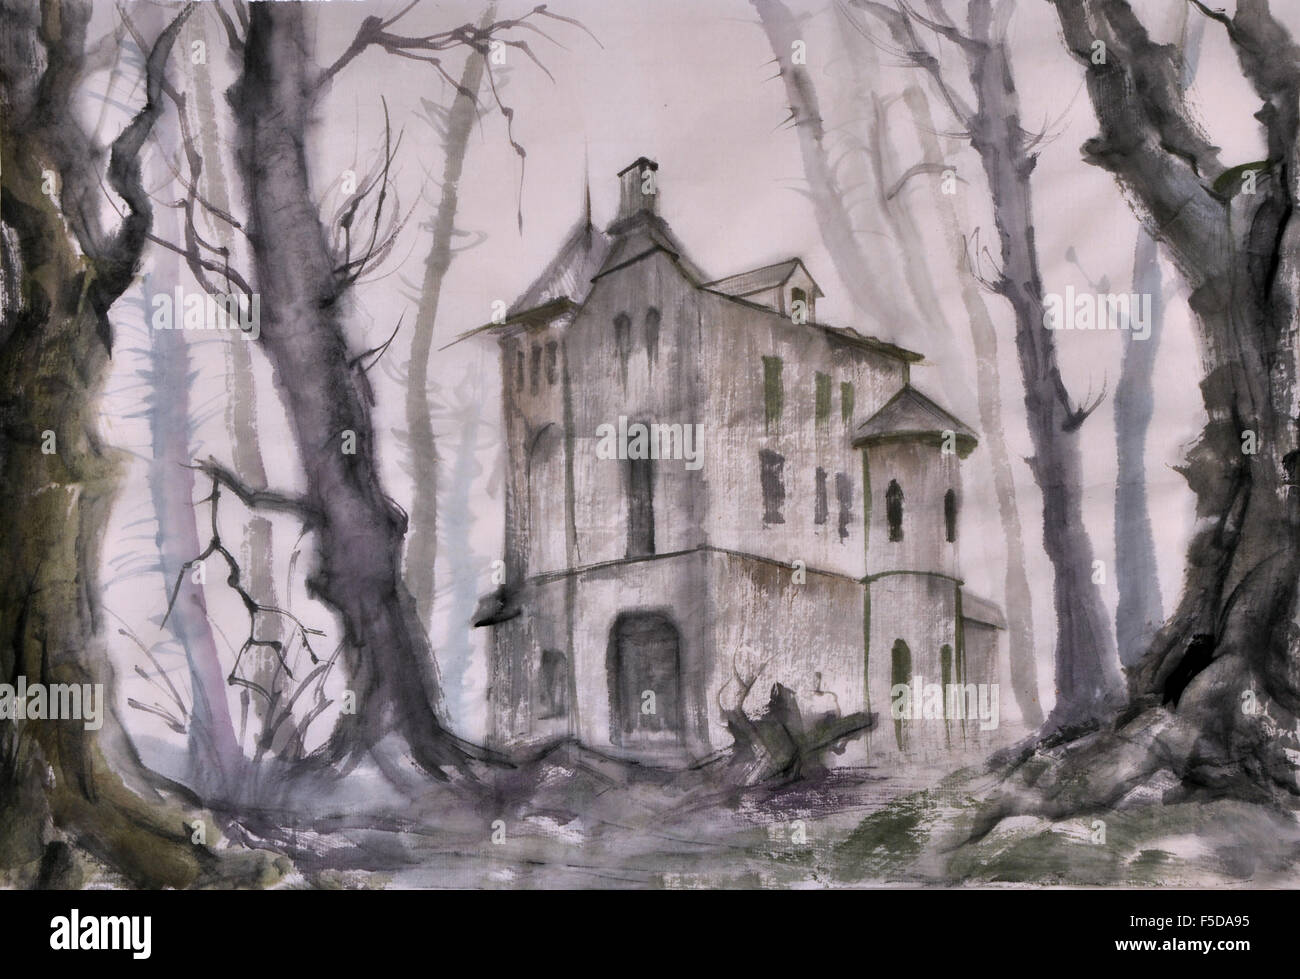 Haunted castle in the autumn bare tree forest, original watercolor painting. - Stock Image